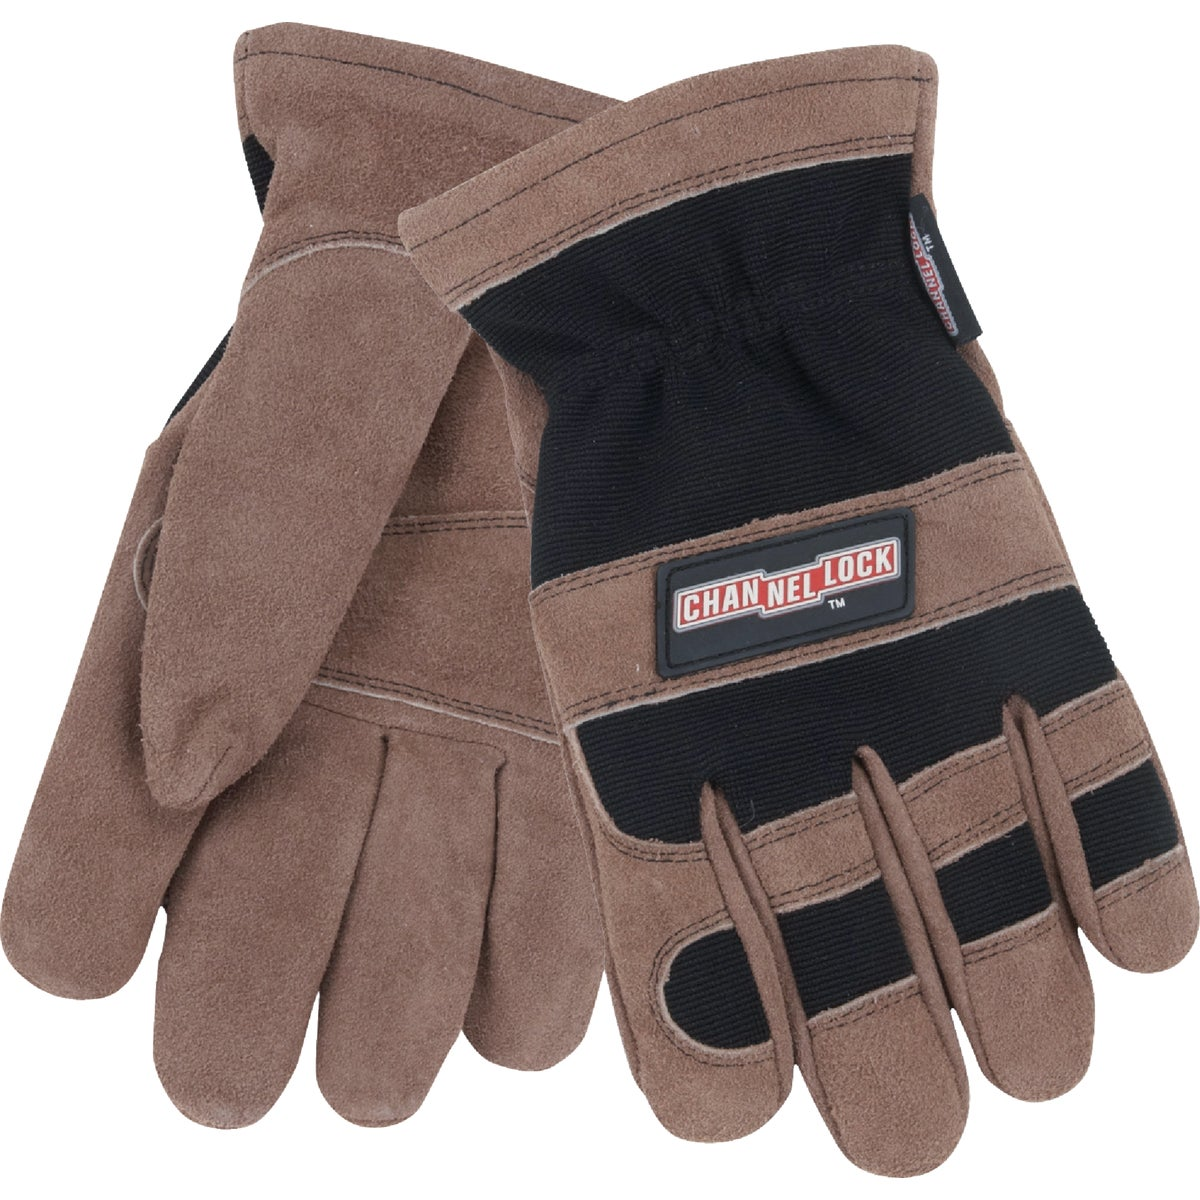 Channellock Products Channellock Leather Work Glove